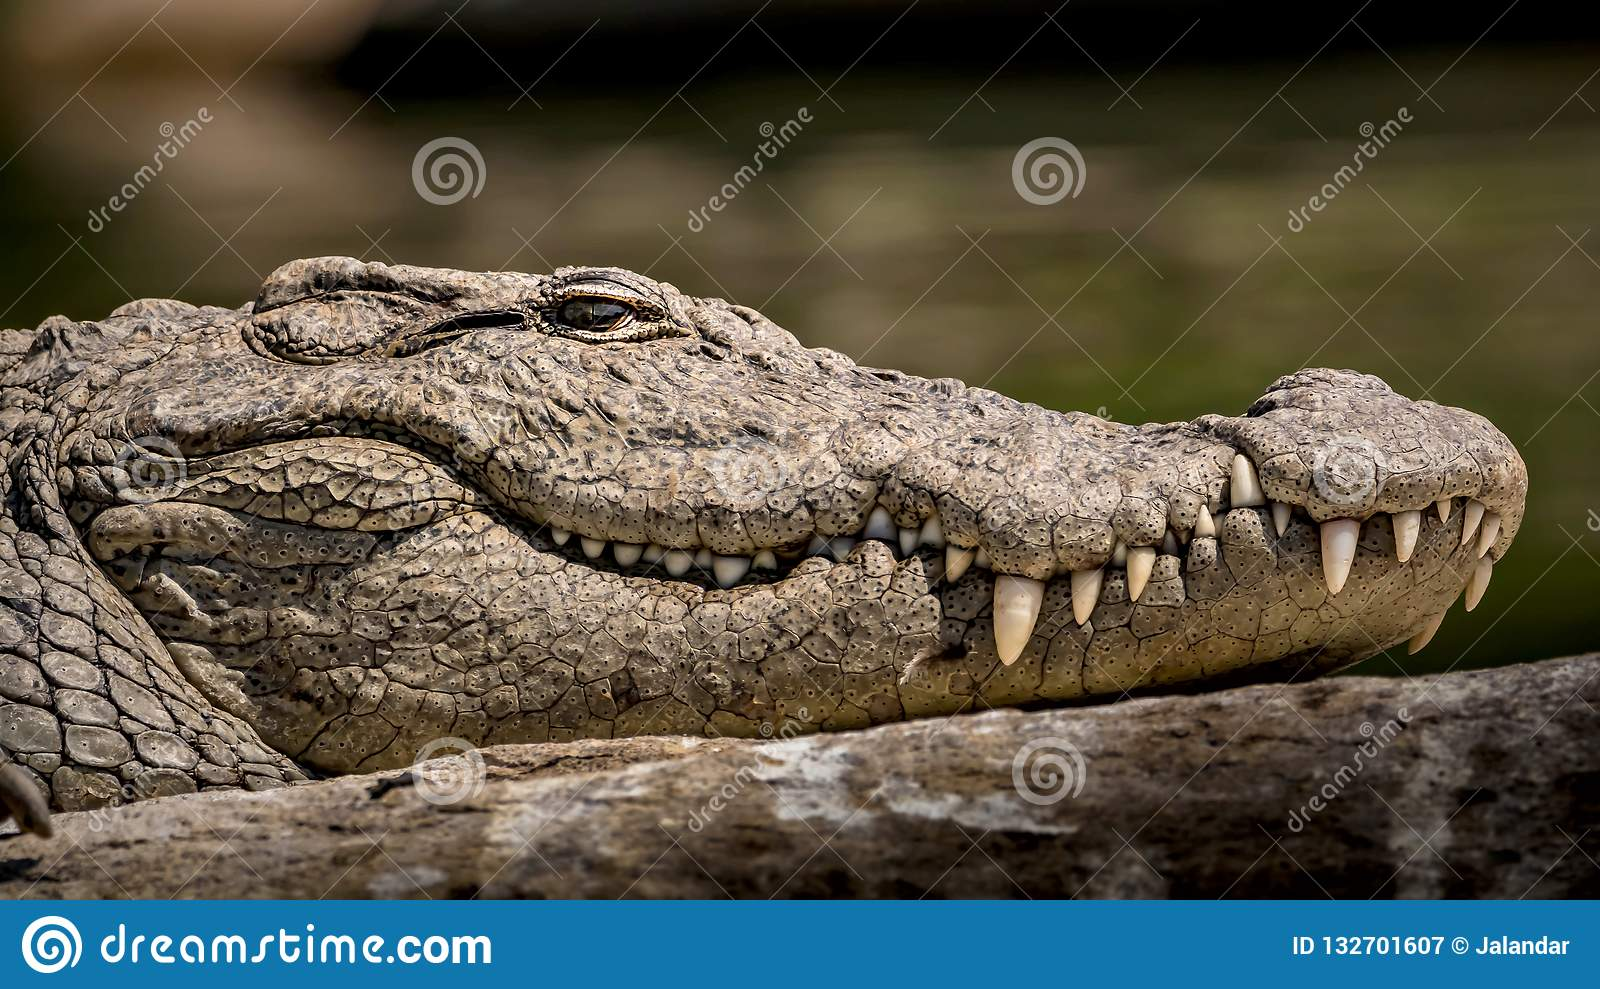 Wild Marsh Crocodile Close-up, with Eyes, Skin Texture and Teeth Patterns Visible